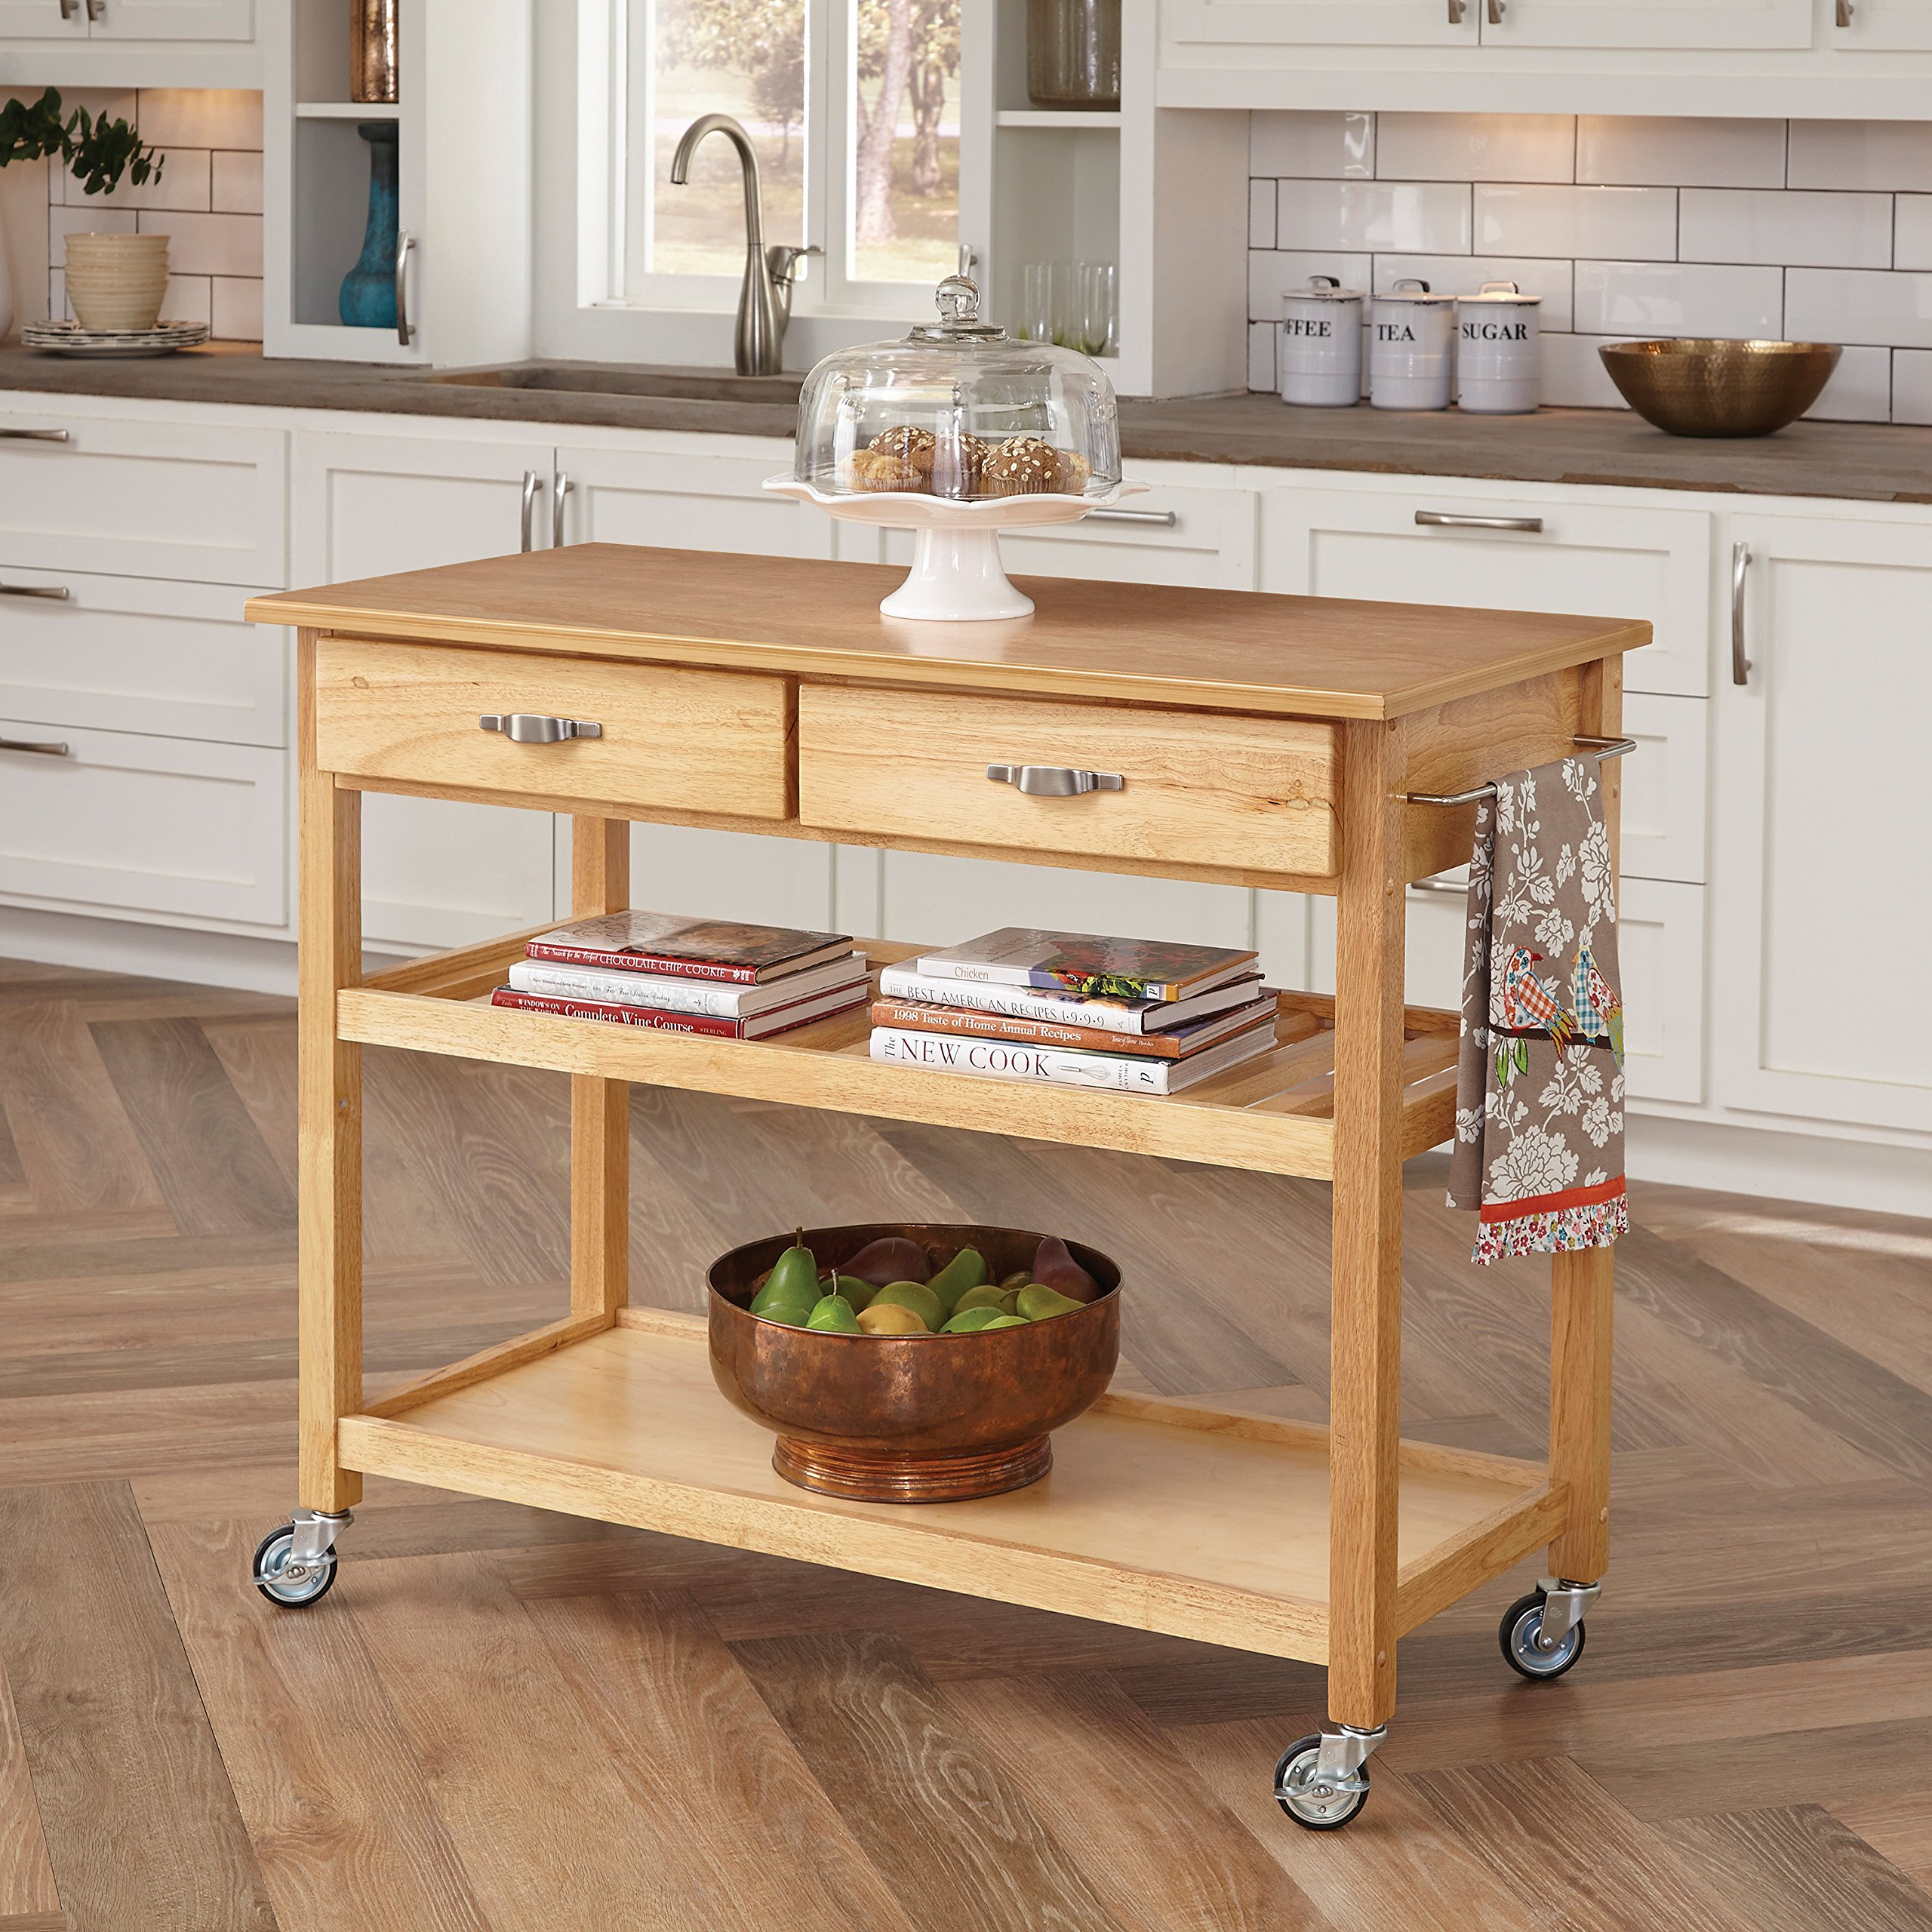 Home Styles Solid Wood Top Kitchen Cart, Natural Finish by Home Styles